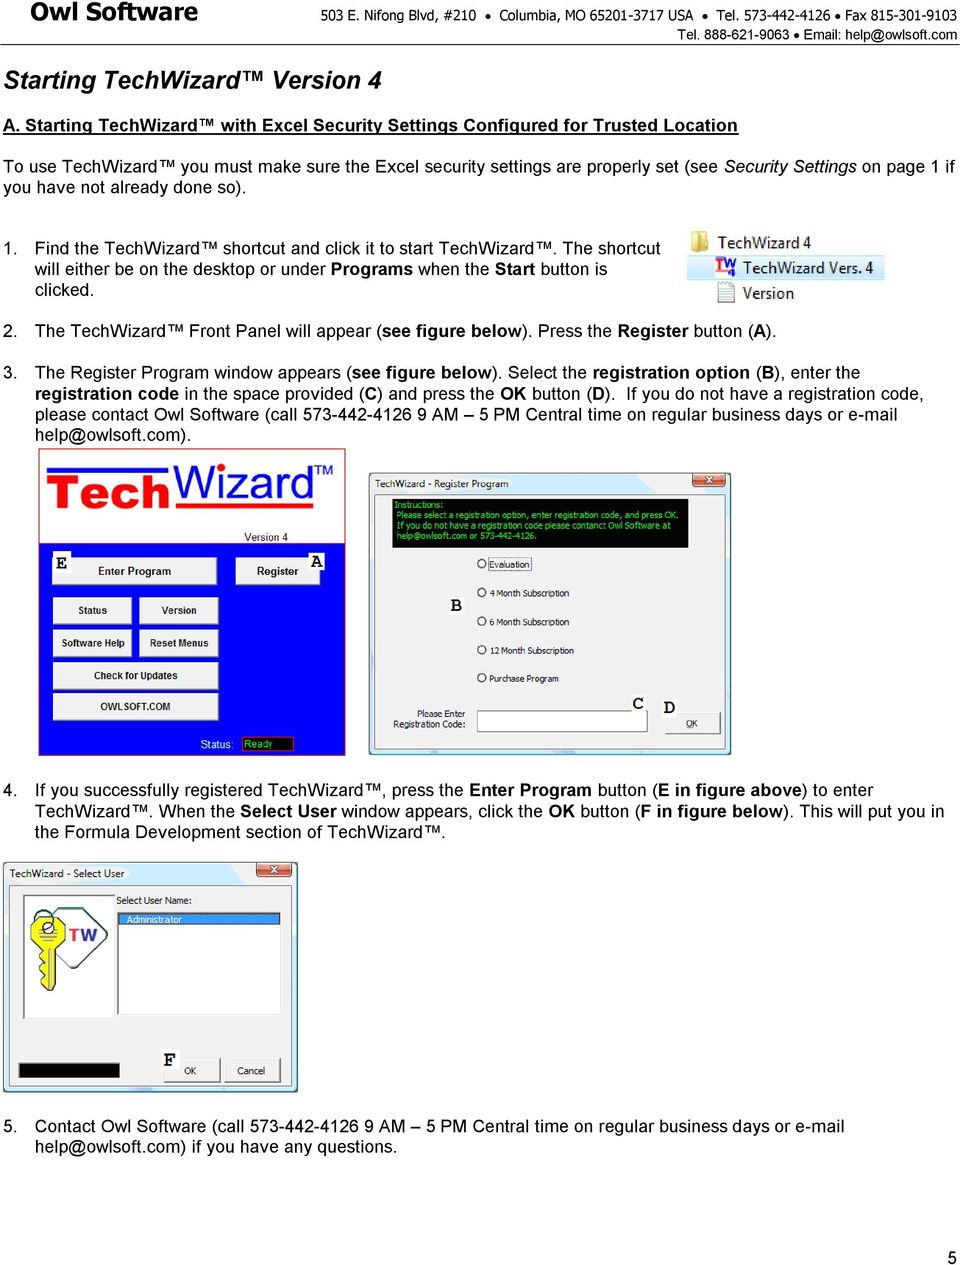 you have not already done so). 1. Find the TechWizard shortcut and click it to start TechWizard. The shortcut will either be on the desktop or under Programs when the Start button is clicked. 2.